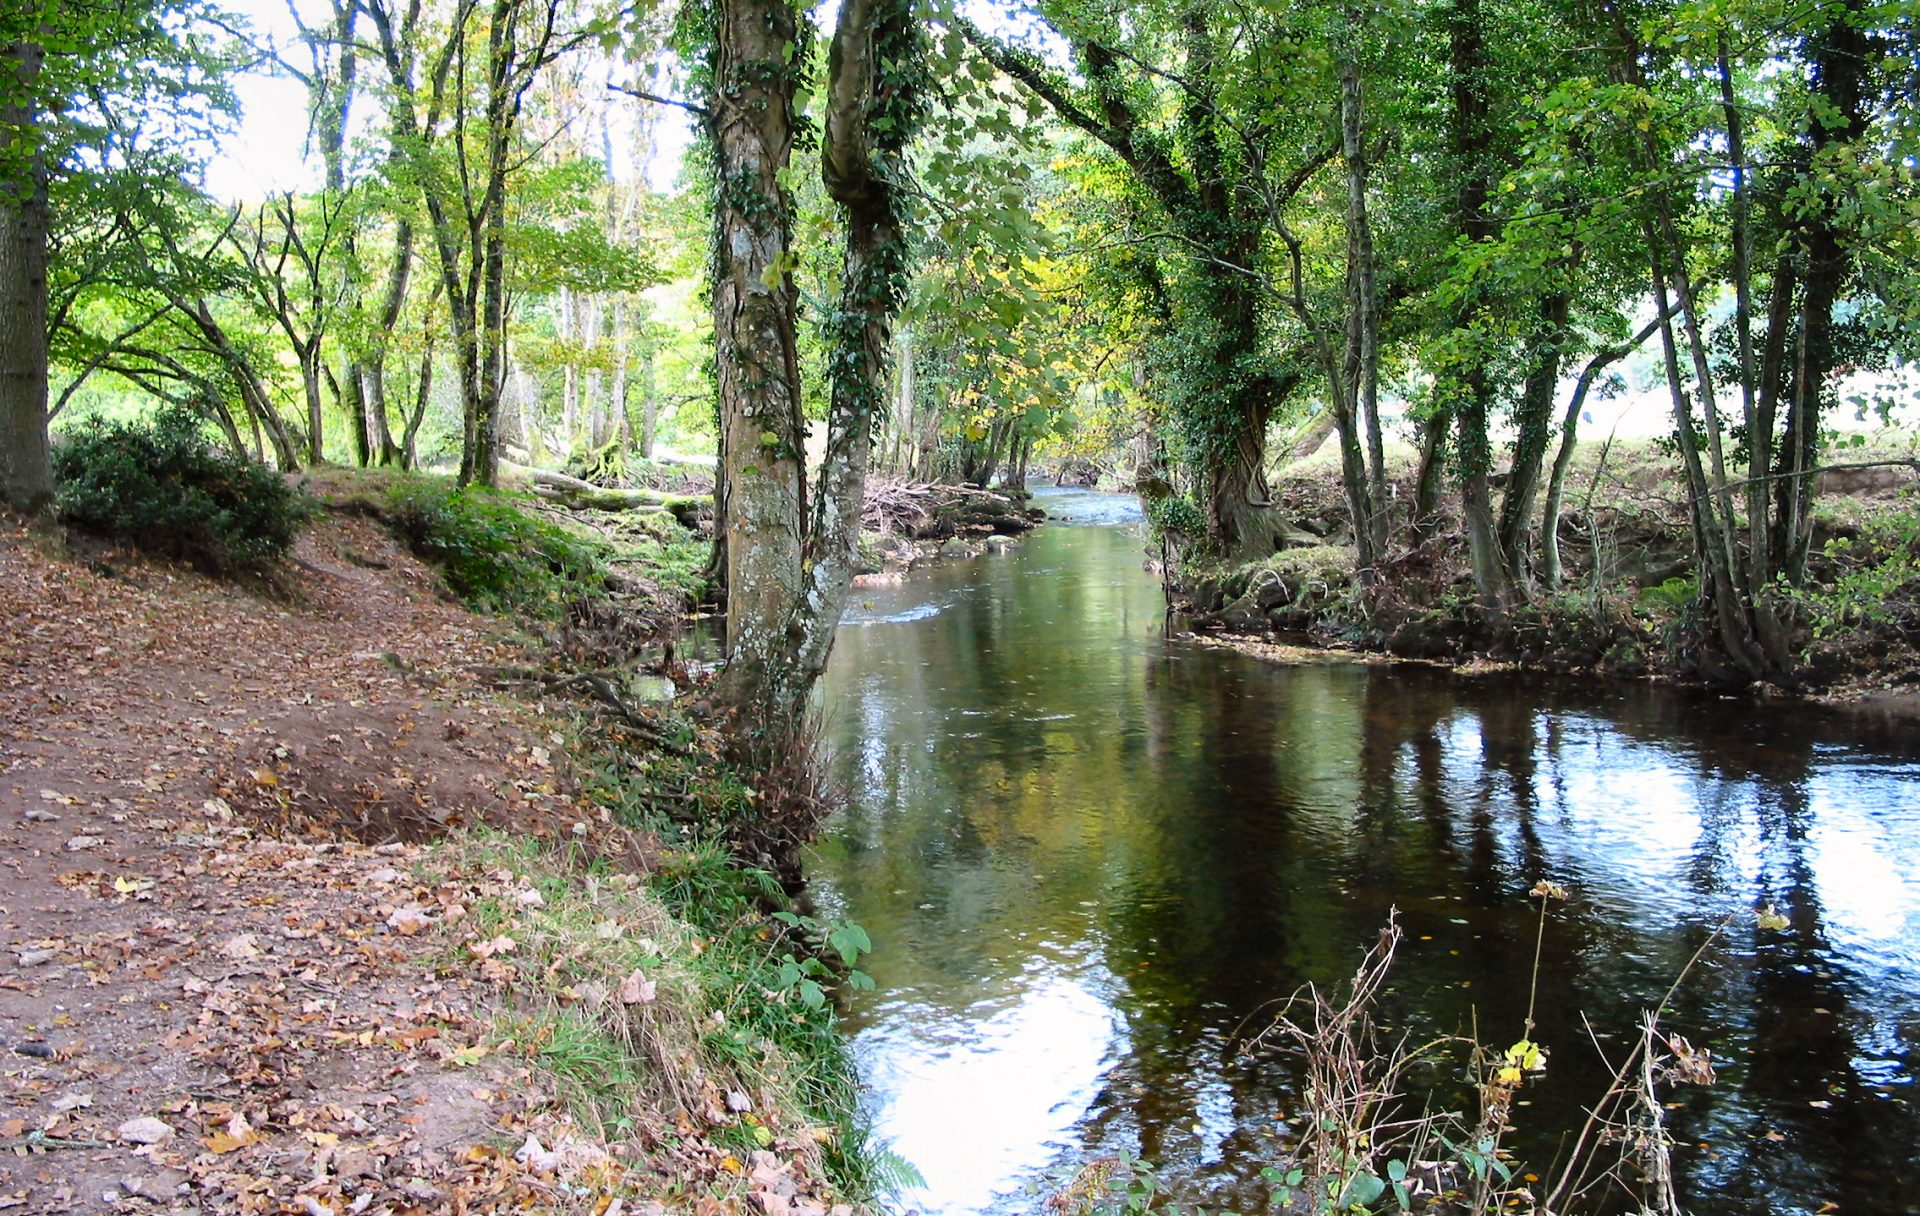 The River Teign that flows from Chagford to Drewsteignton.